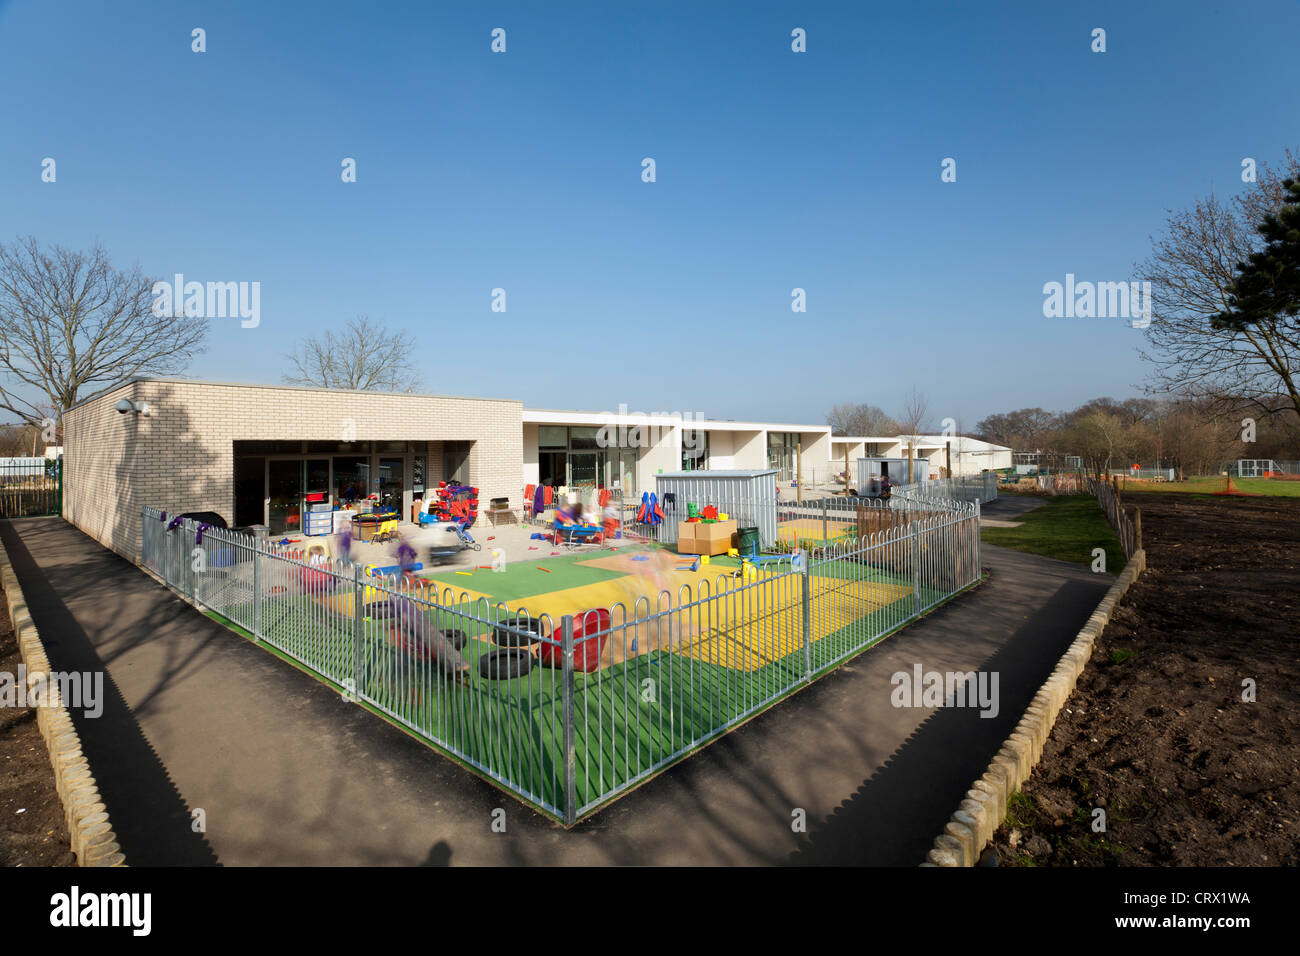 Primary school playground with blurred children playing - Stock Image